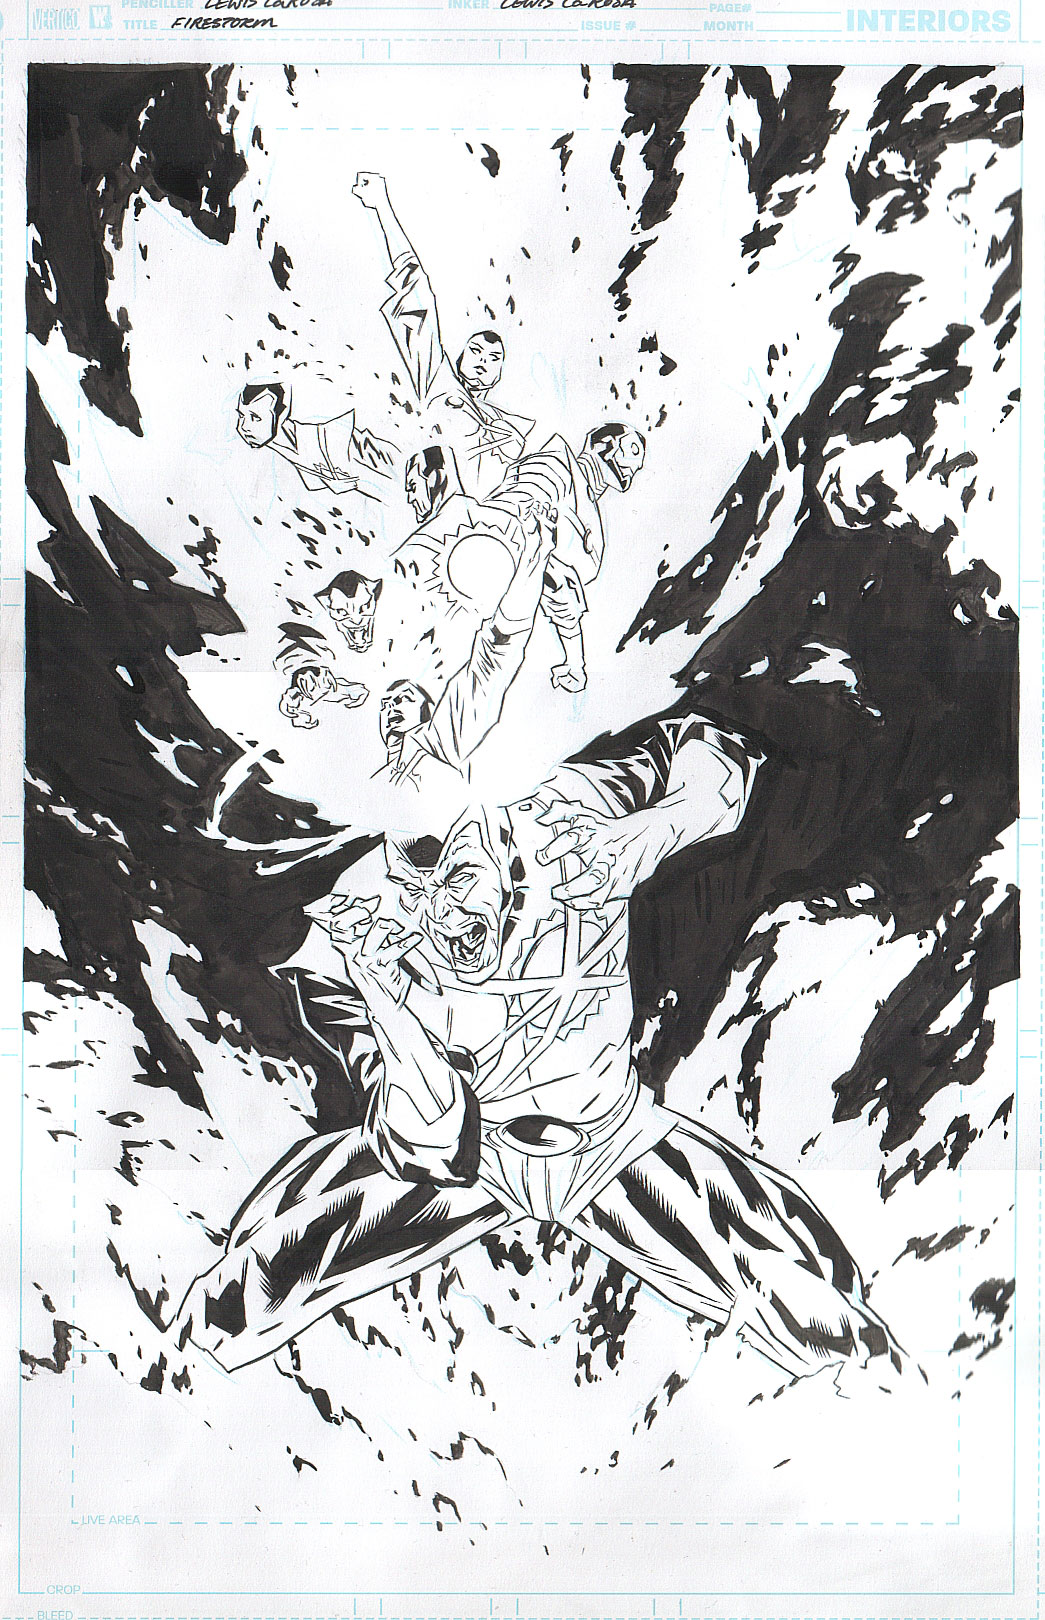 Firestorm volume III promo artwork by Lewis LaRosa from Fizzit blog